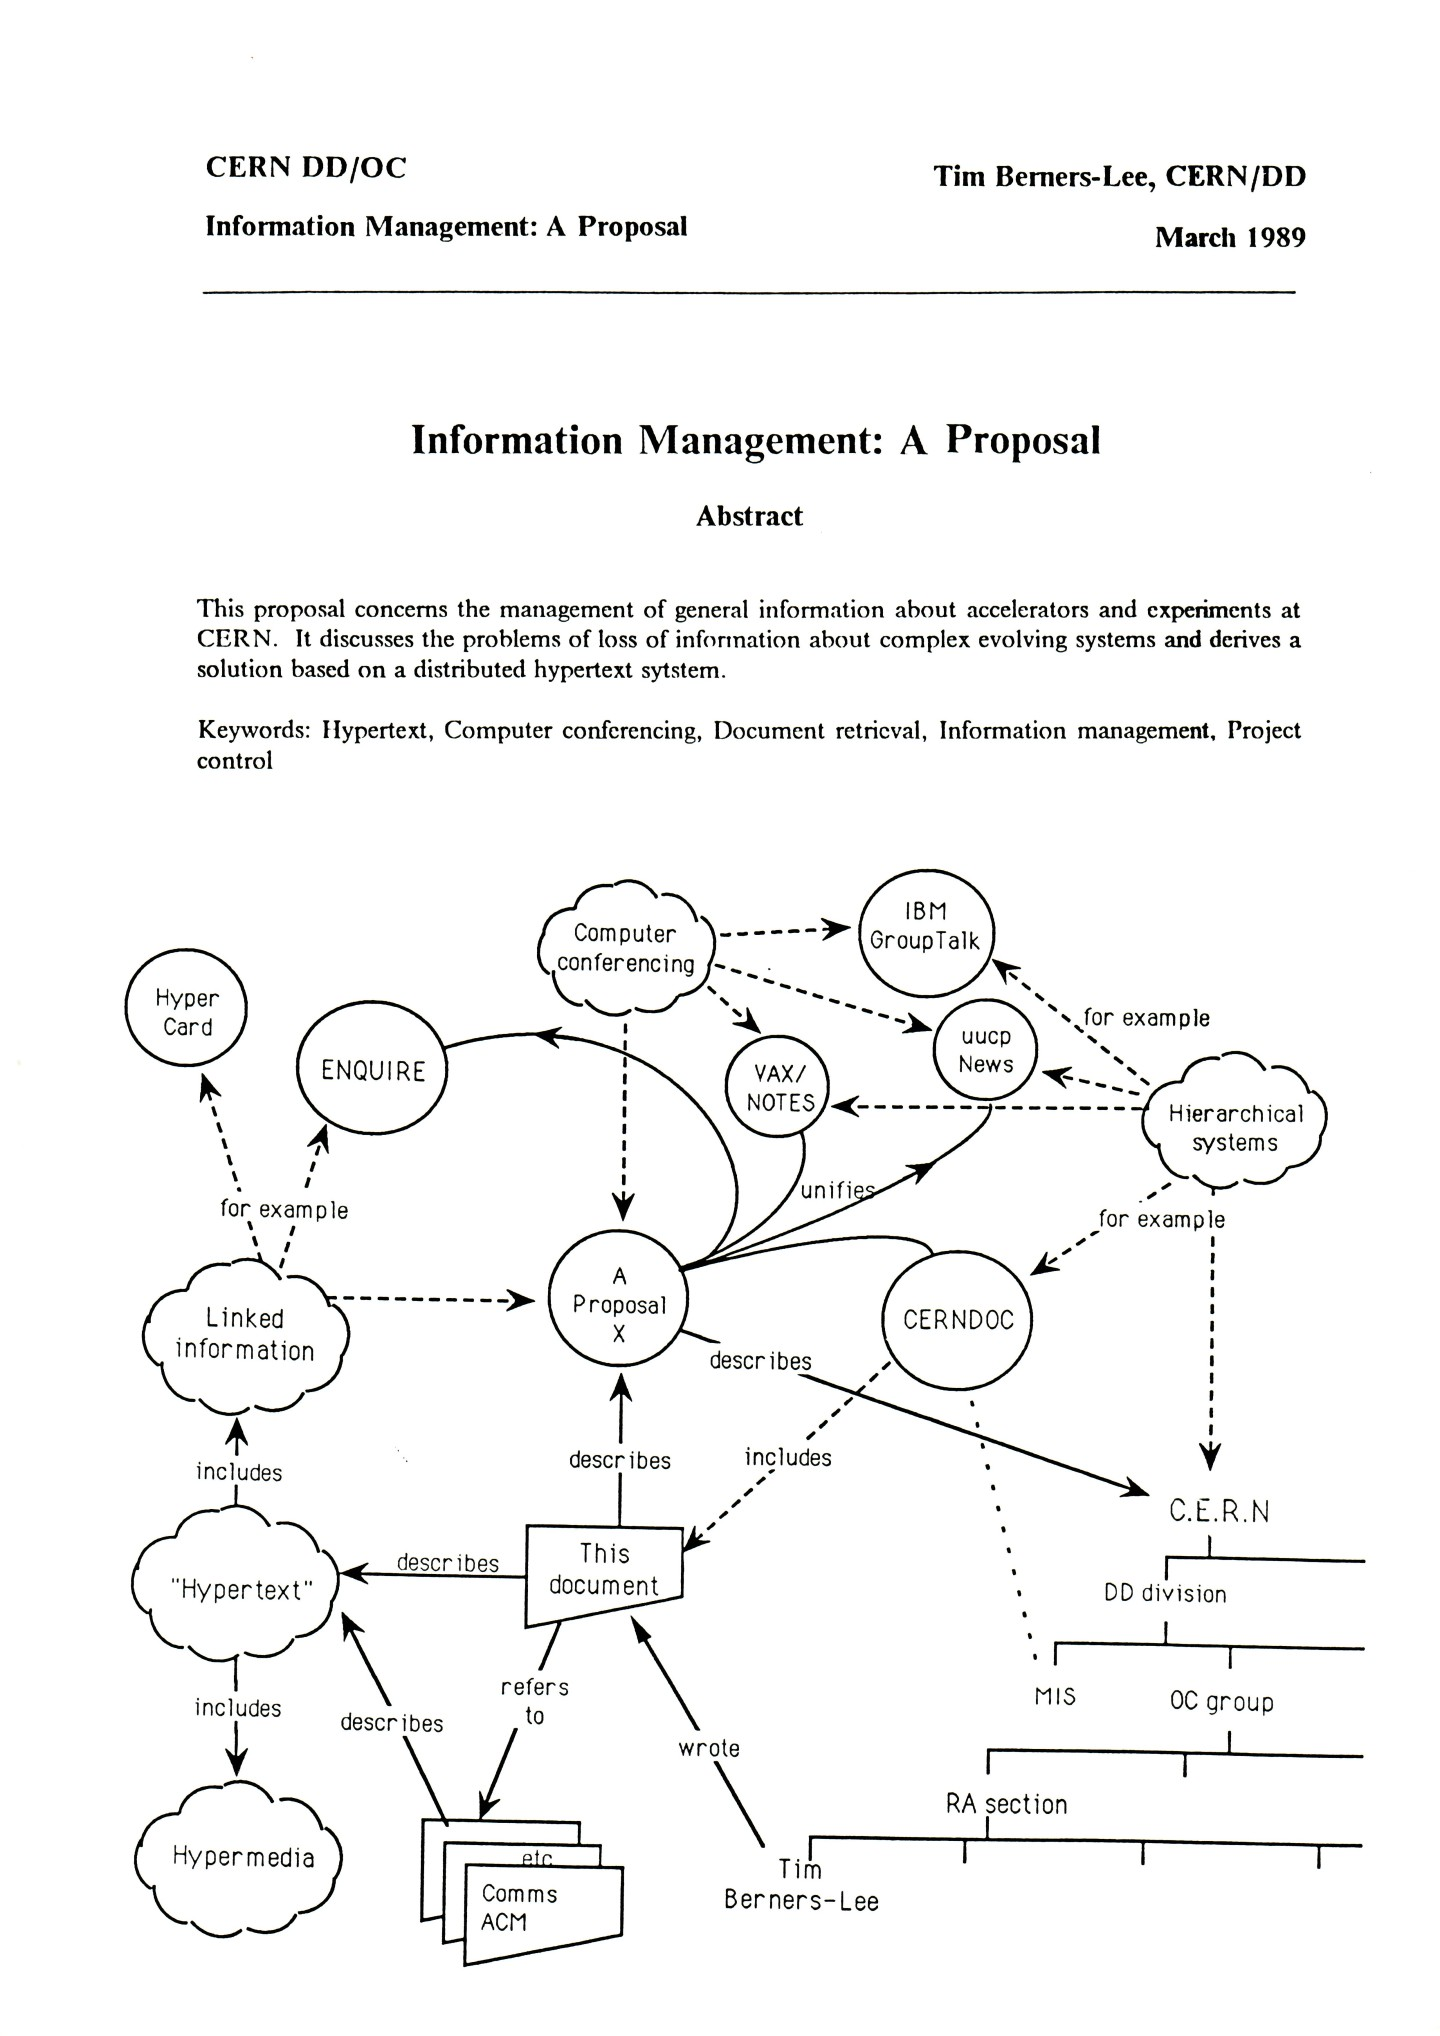 An image of the first page of Tim Berners-Lee's proposal for the World Wide Web in March 1989